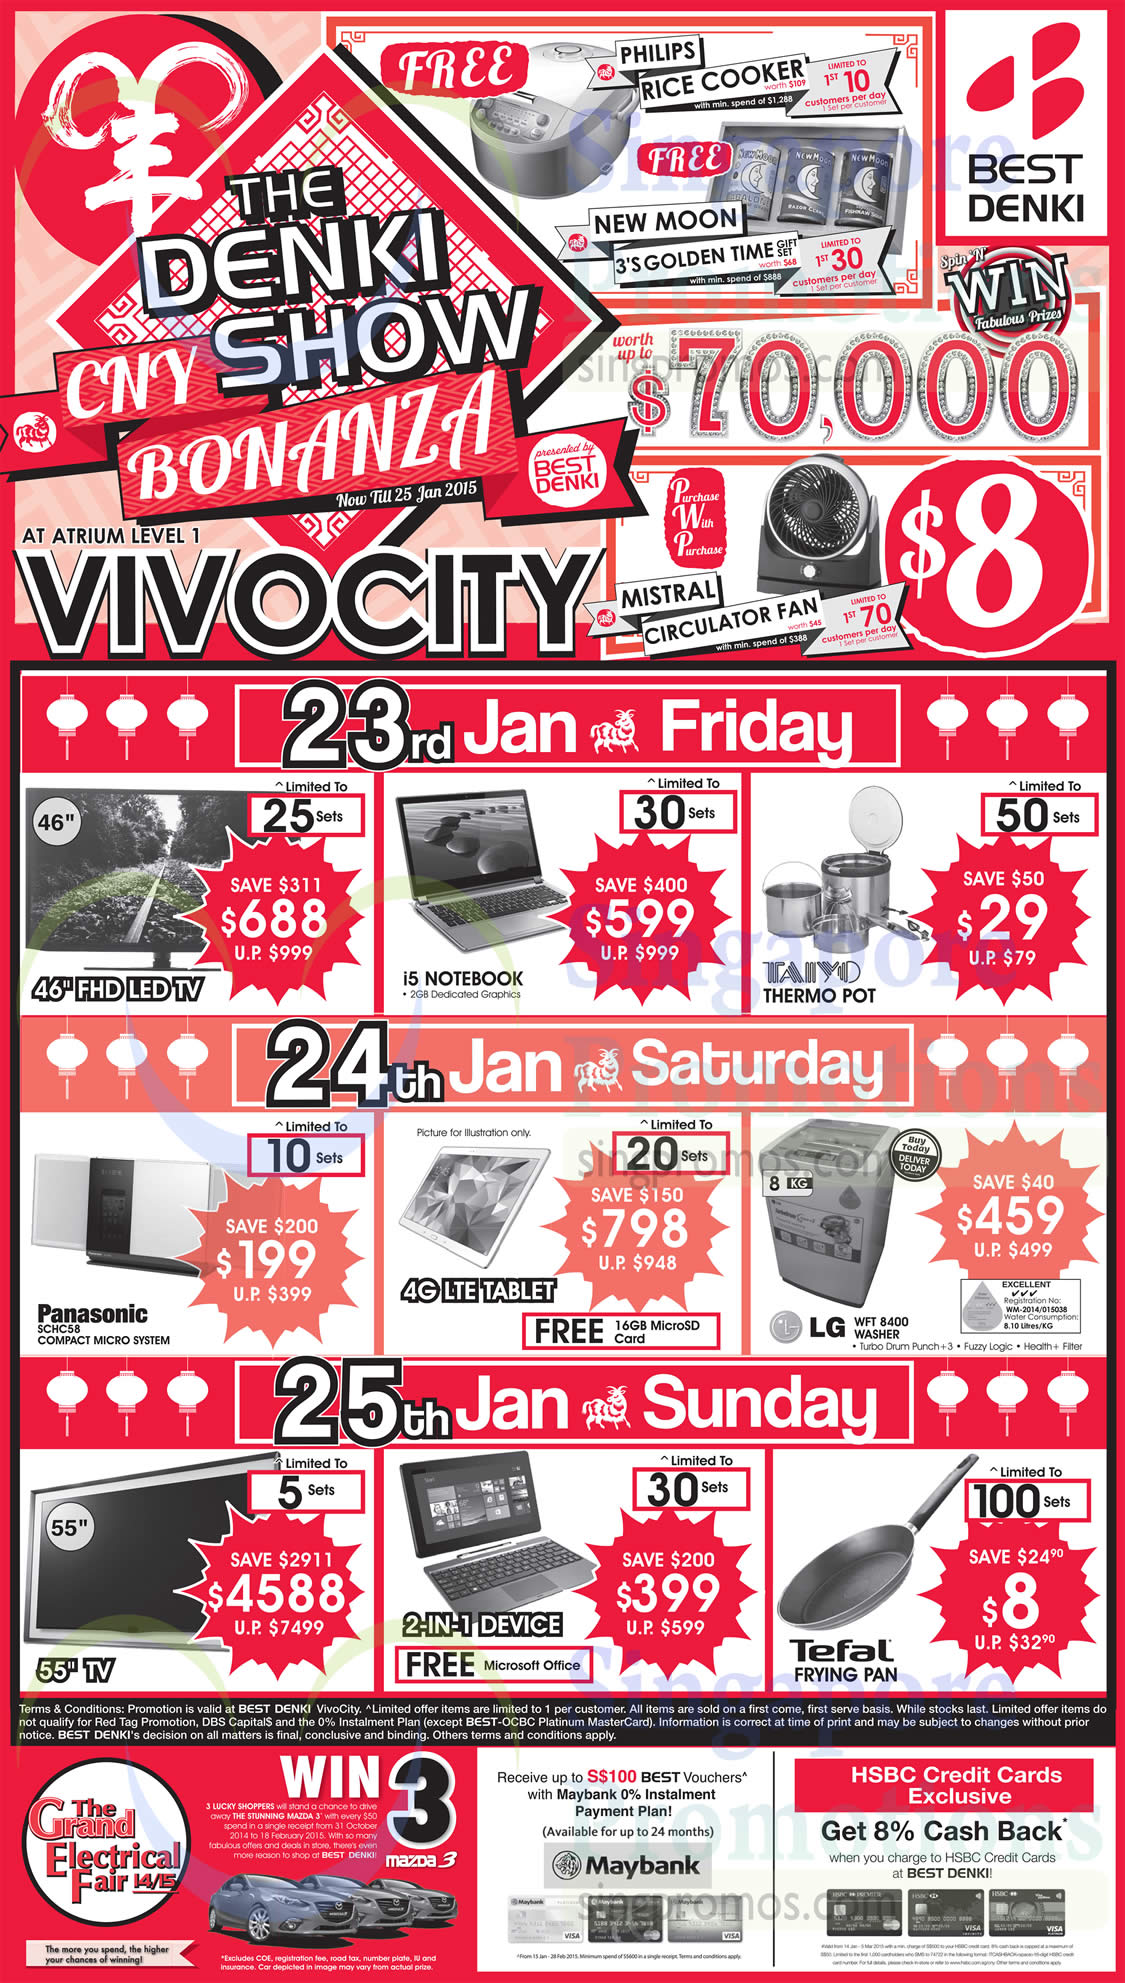 23 Jan Friday, Saturday, Sunday Special Promotions